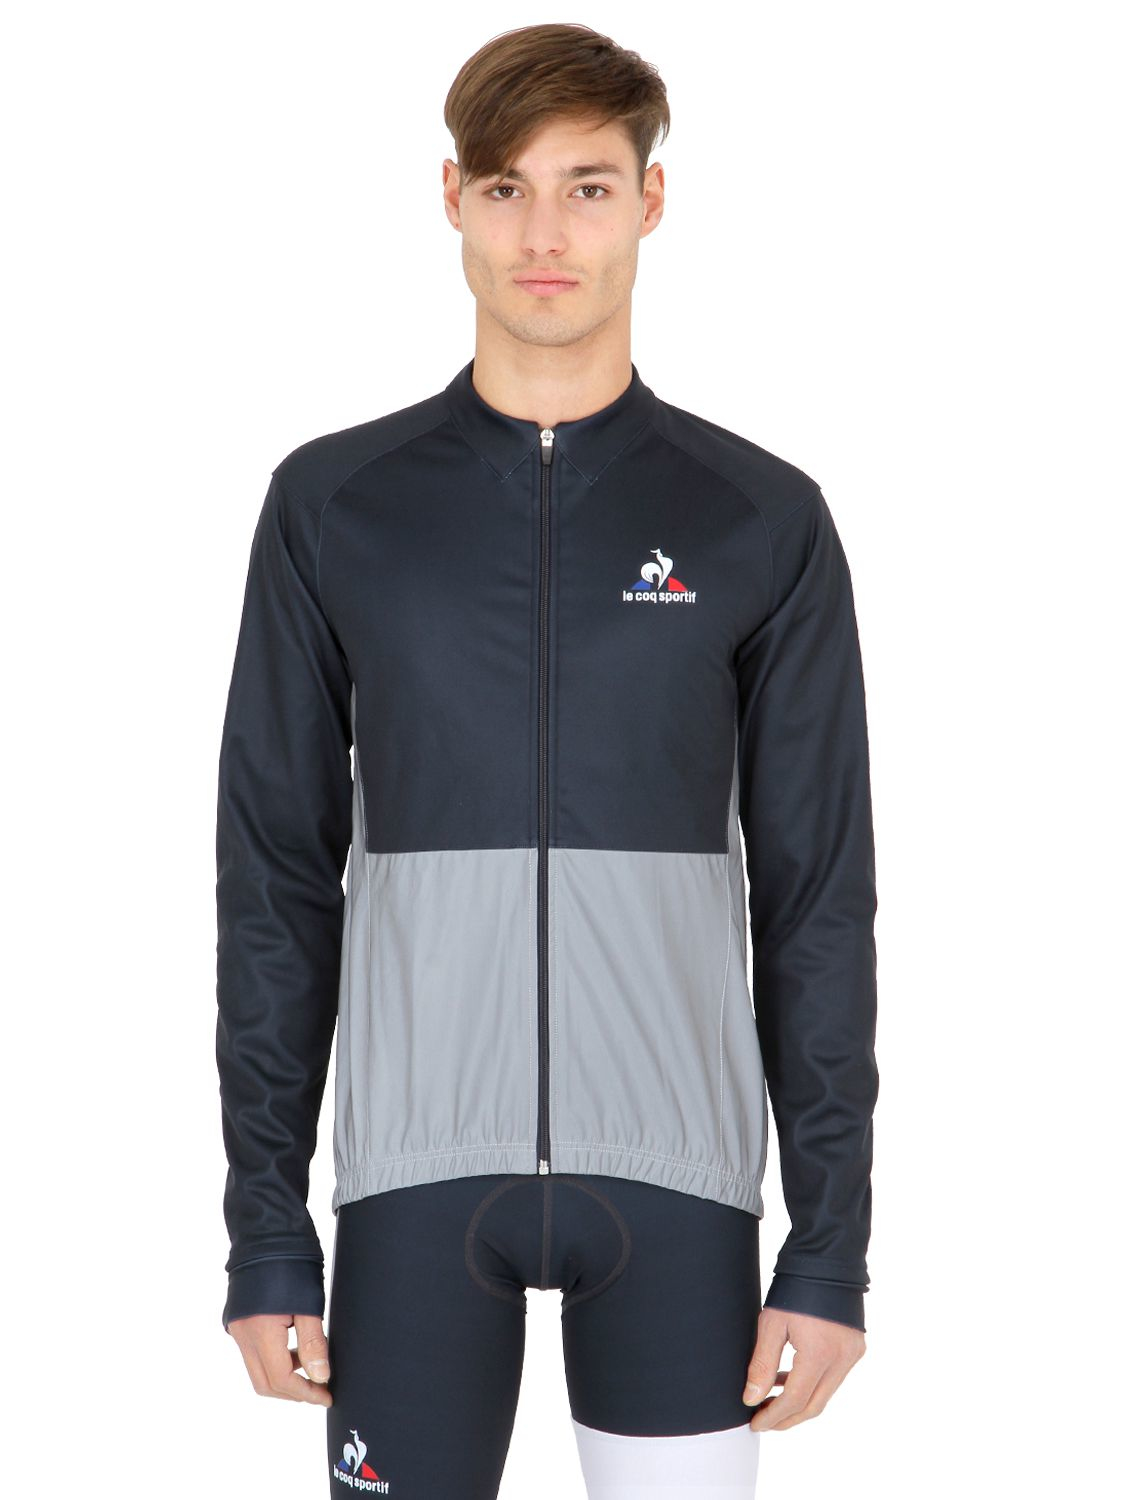 le coq sportif classic soft shell cycling jacket in blue for men dark blue save 46 lyst. Black Bedroom Furniture Sets. Home Design Ideas